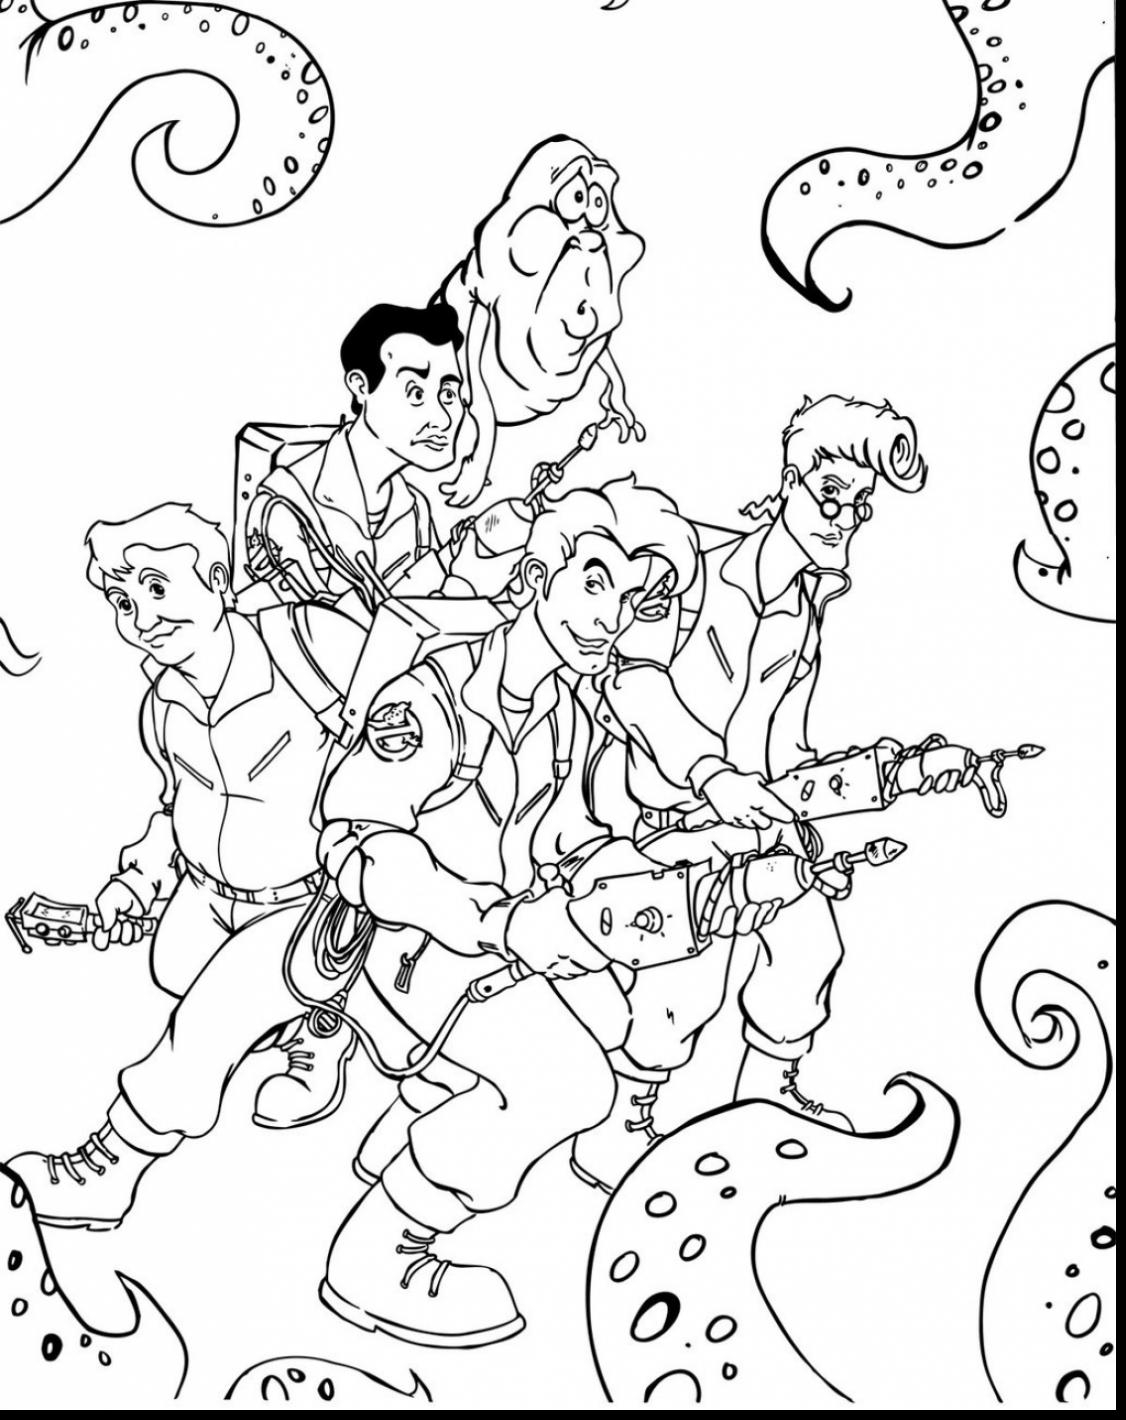 Ghostbusters Slimer Coloring Pages